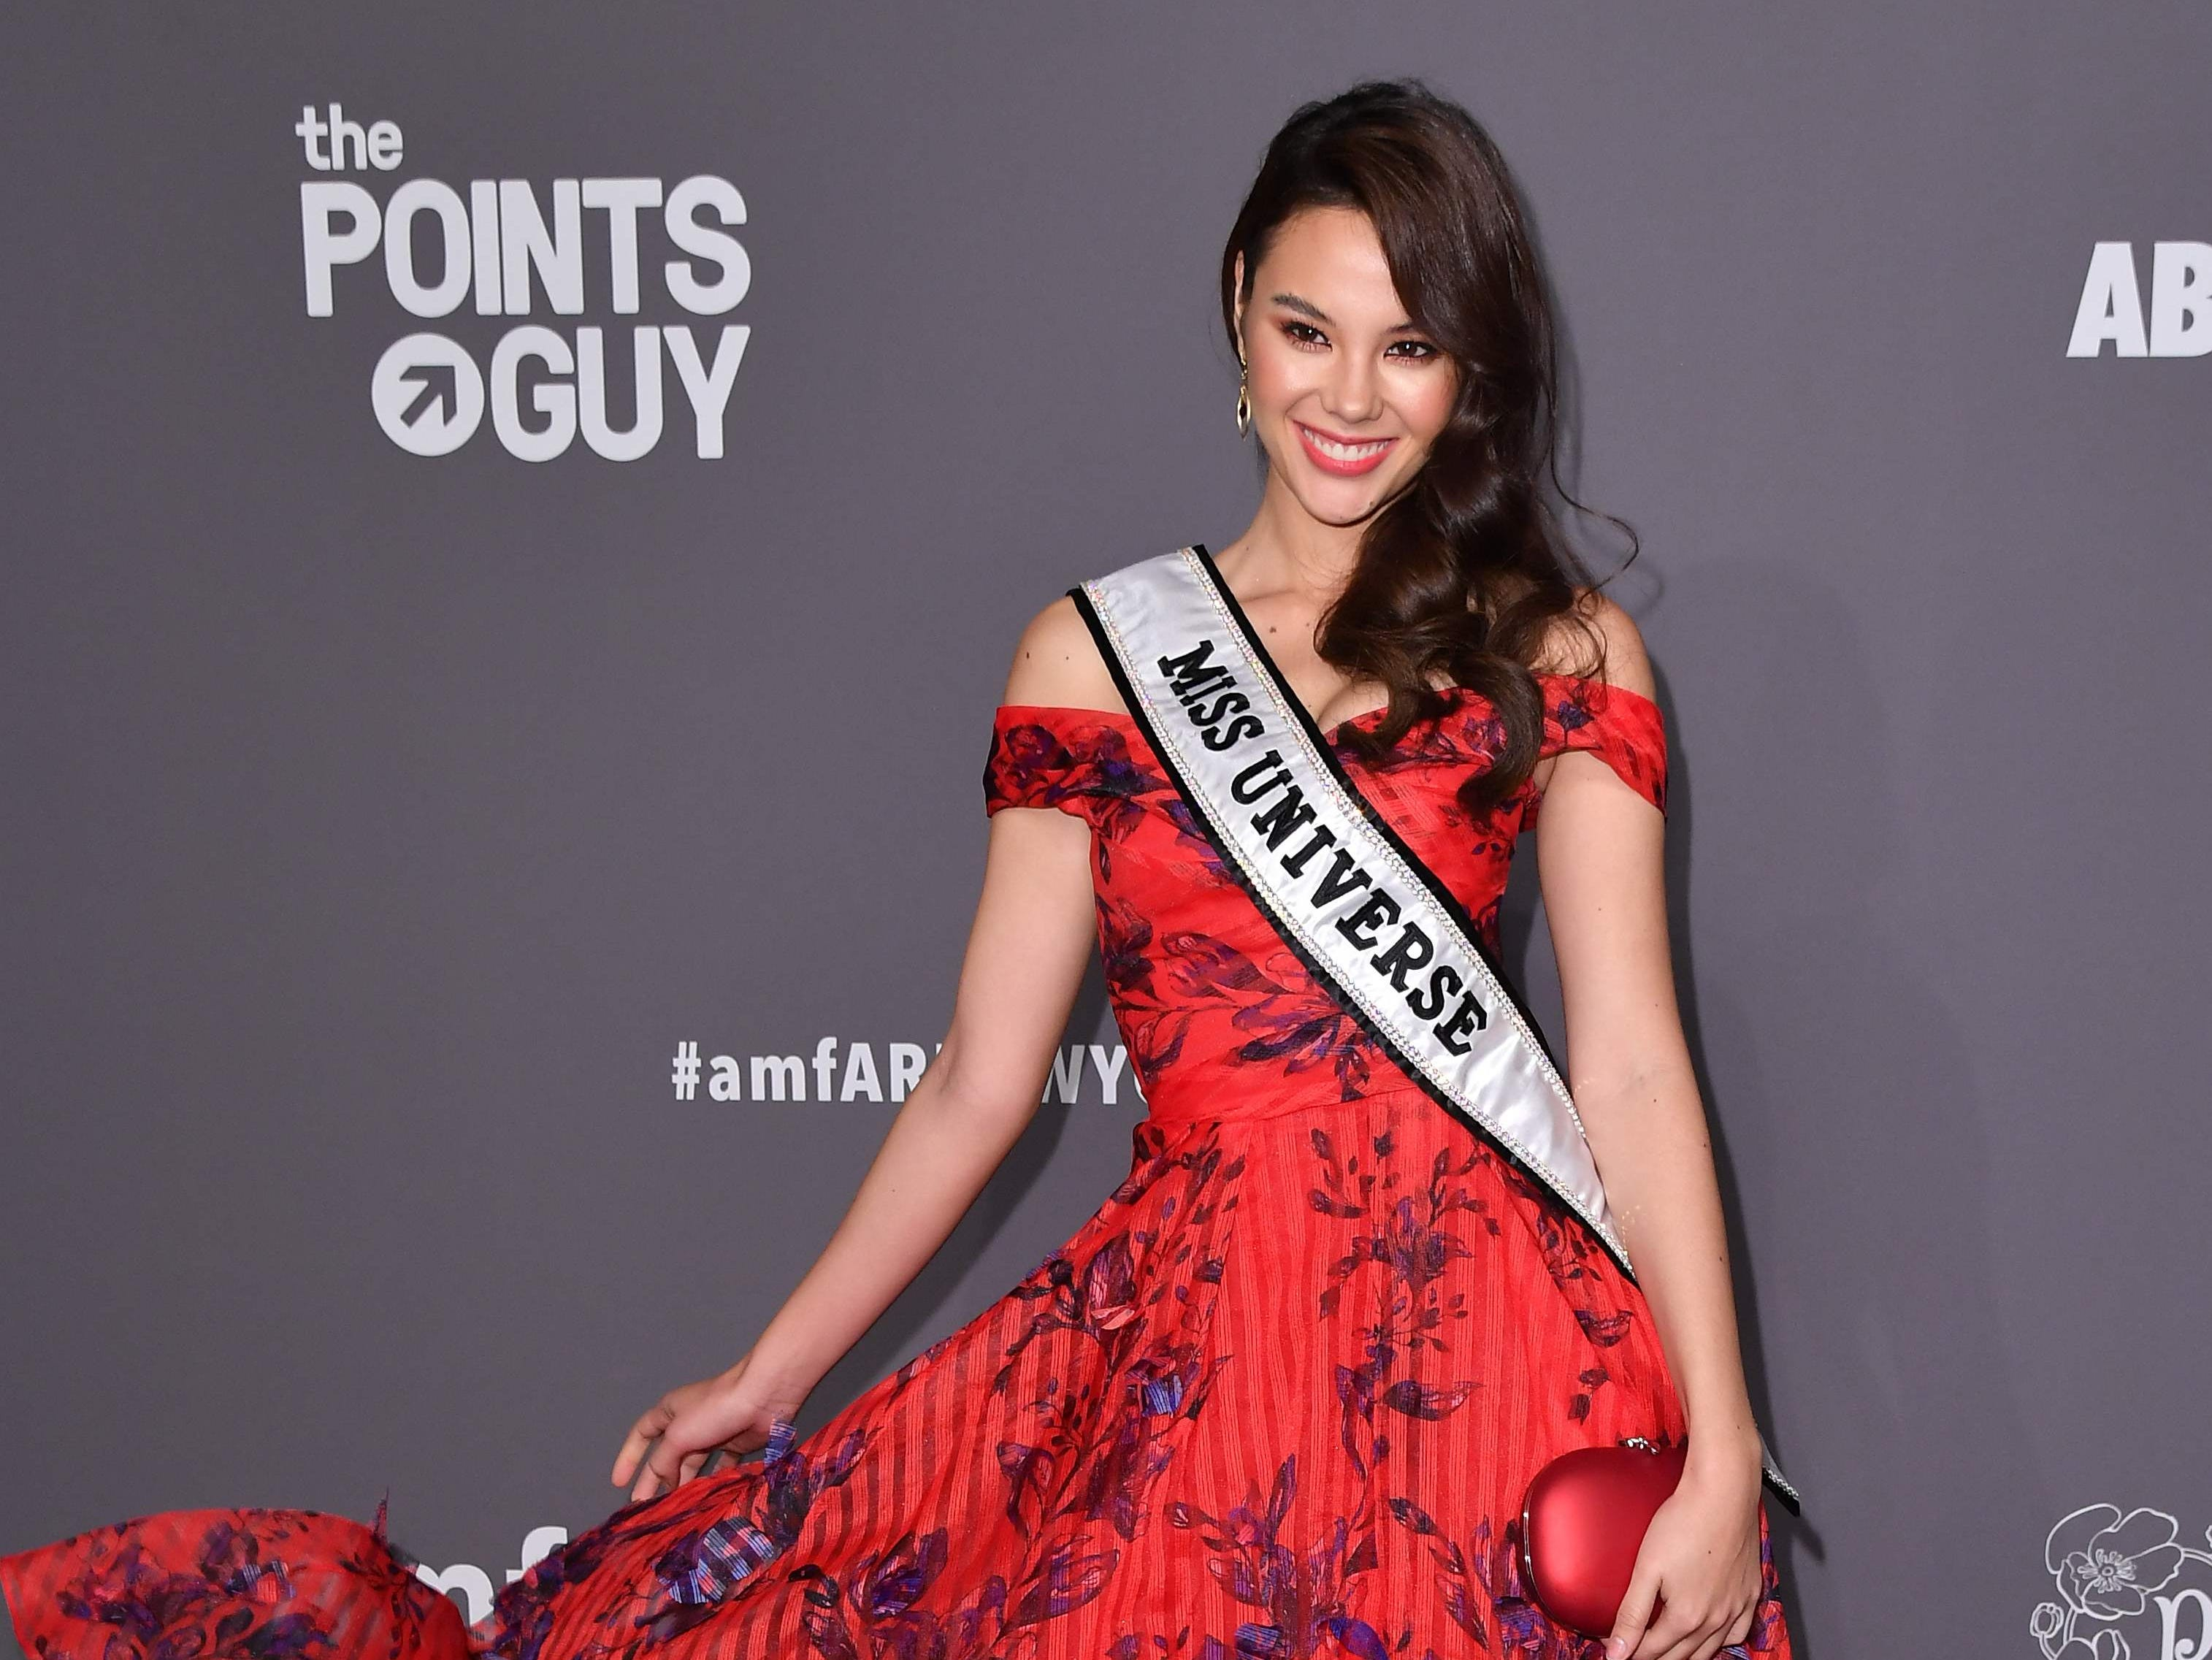 Miss Universe Catriona Gray arrives to attend the amfAR Gala New York at Cipriani Wall Street in New York City on February 6, 2019. (Photo by ANGELA WEISS / AFP)ANGELA WEISS/AFP/Getty Images ORIG FILE ID: AFP_1D46KS